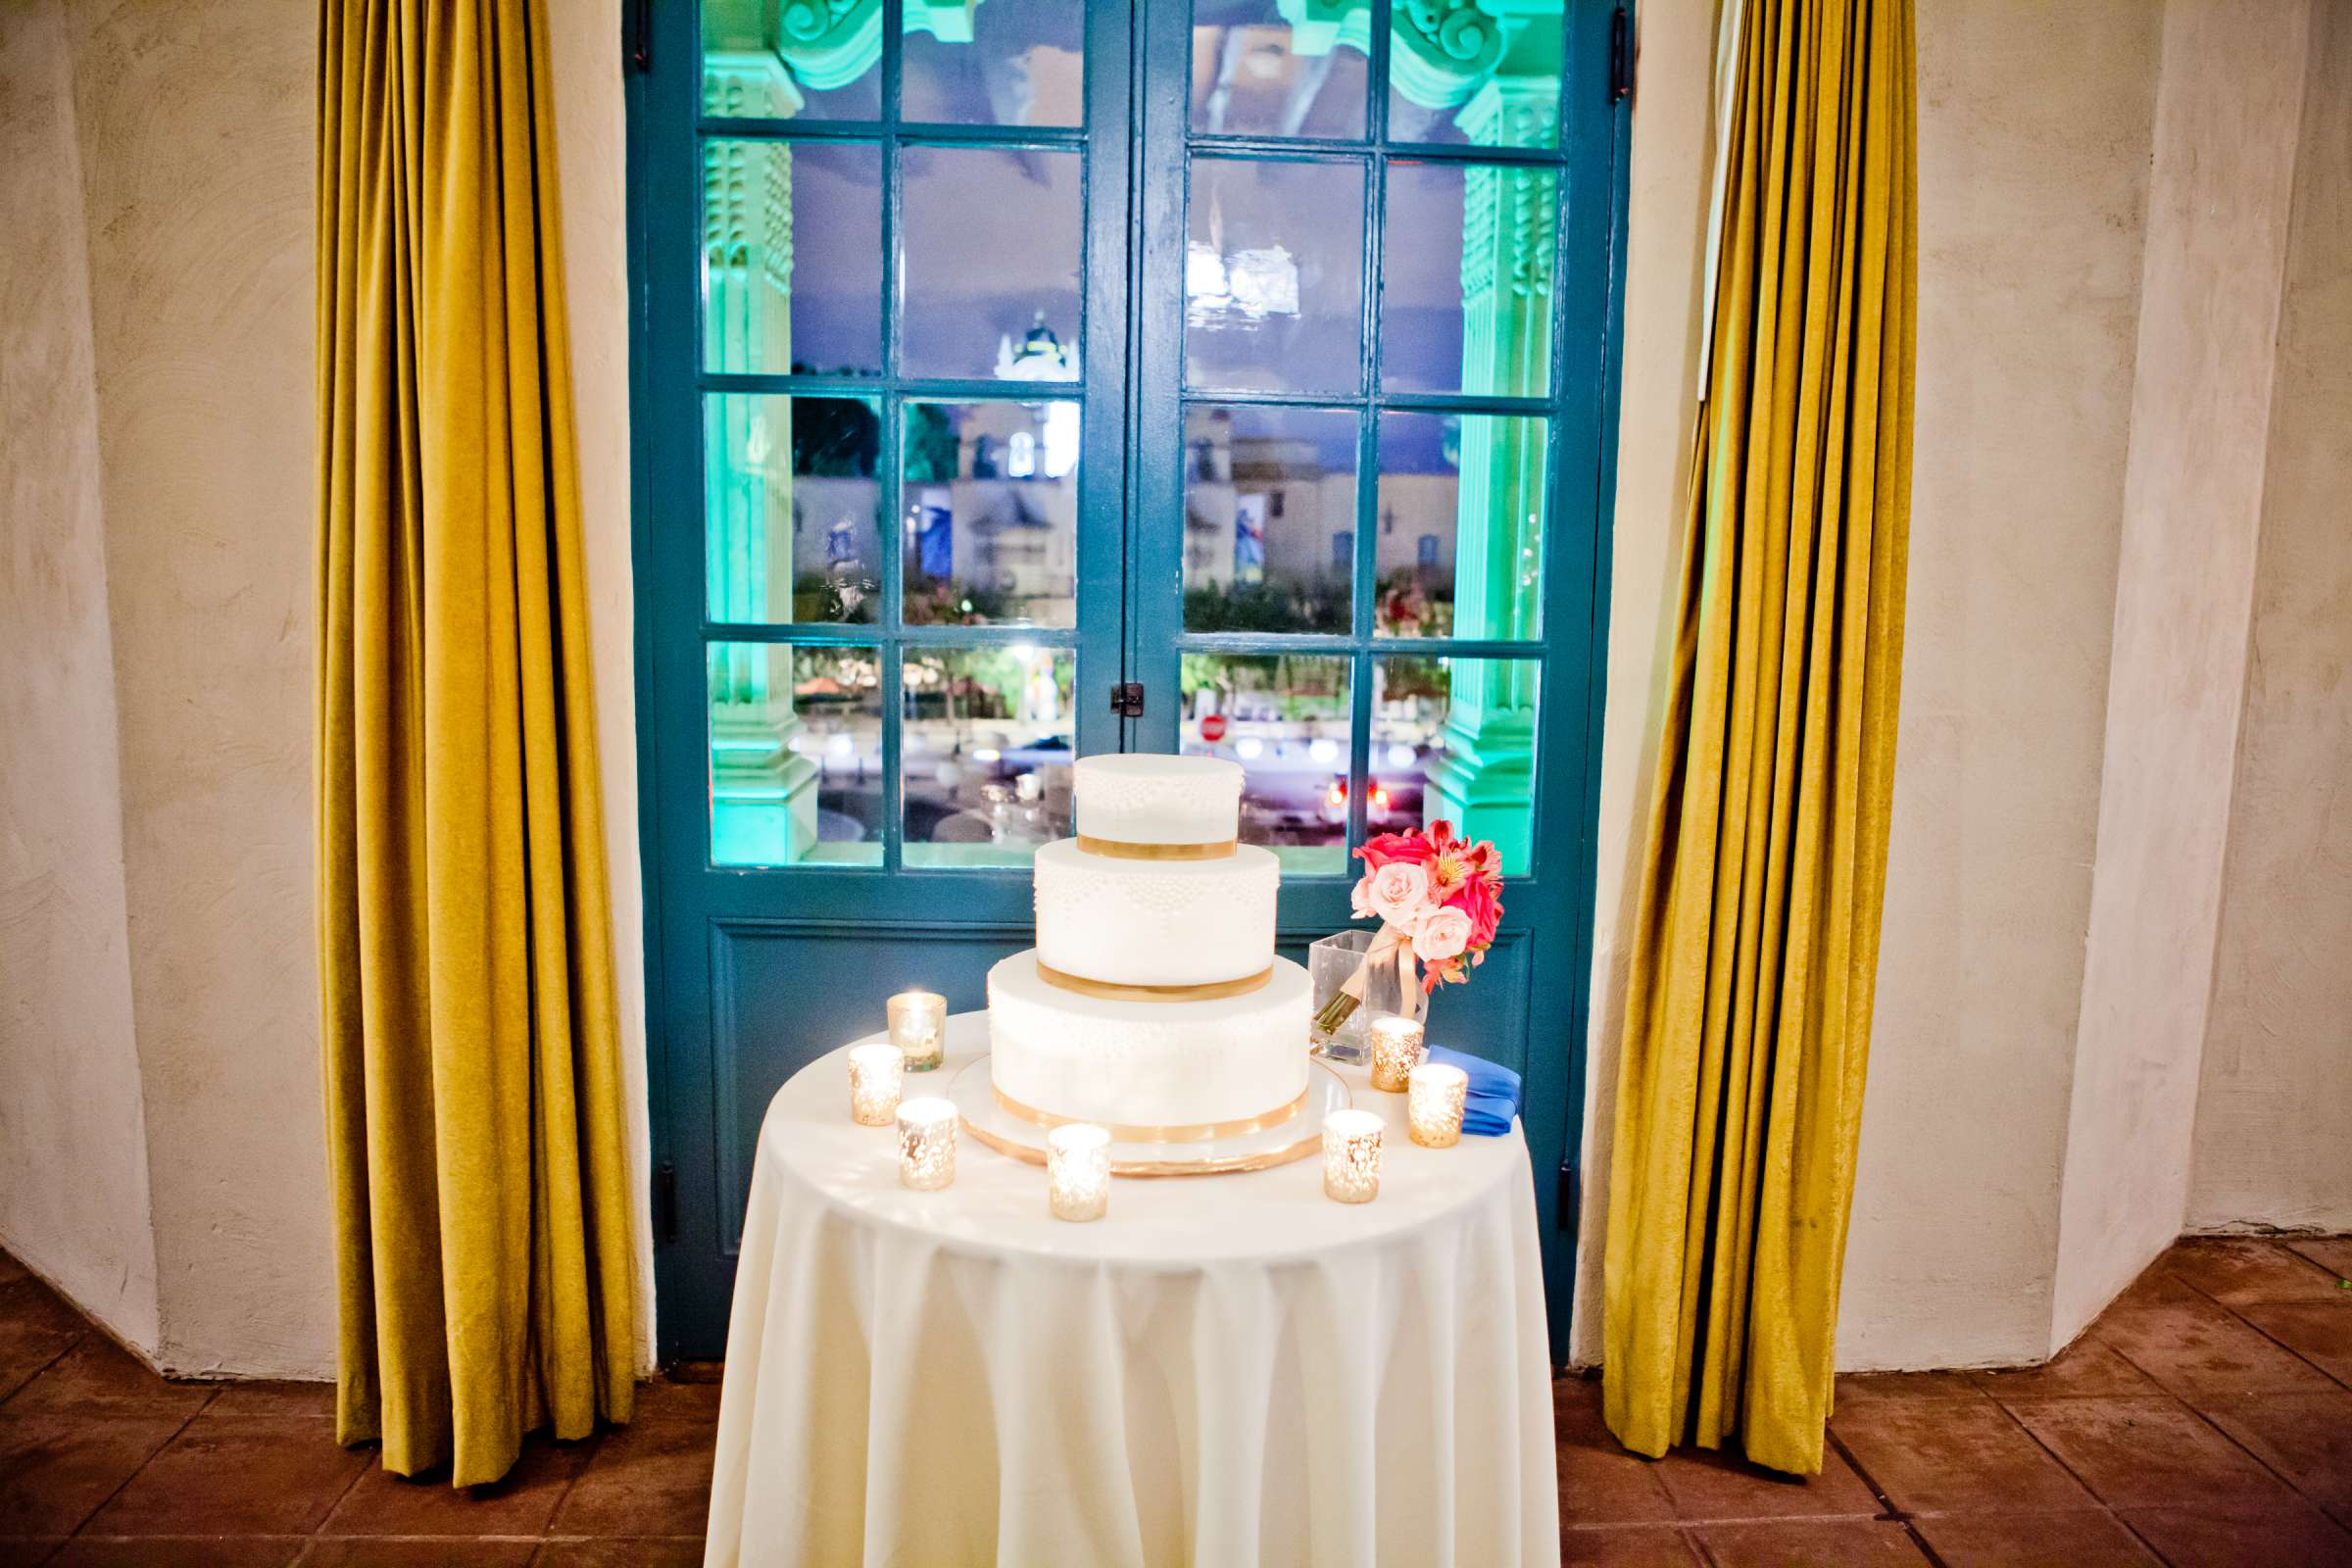 Cake at The Prado Wedding coordinated by First Comes Love Weddings & Events, Erin and Peter Wedding Photo #46 by True Photography